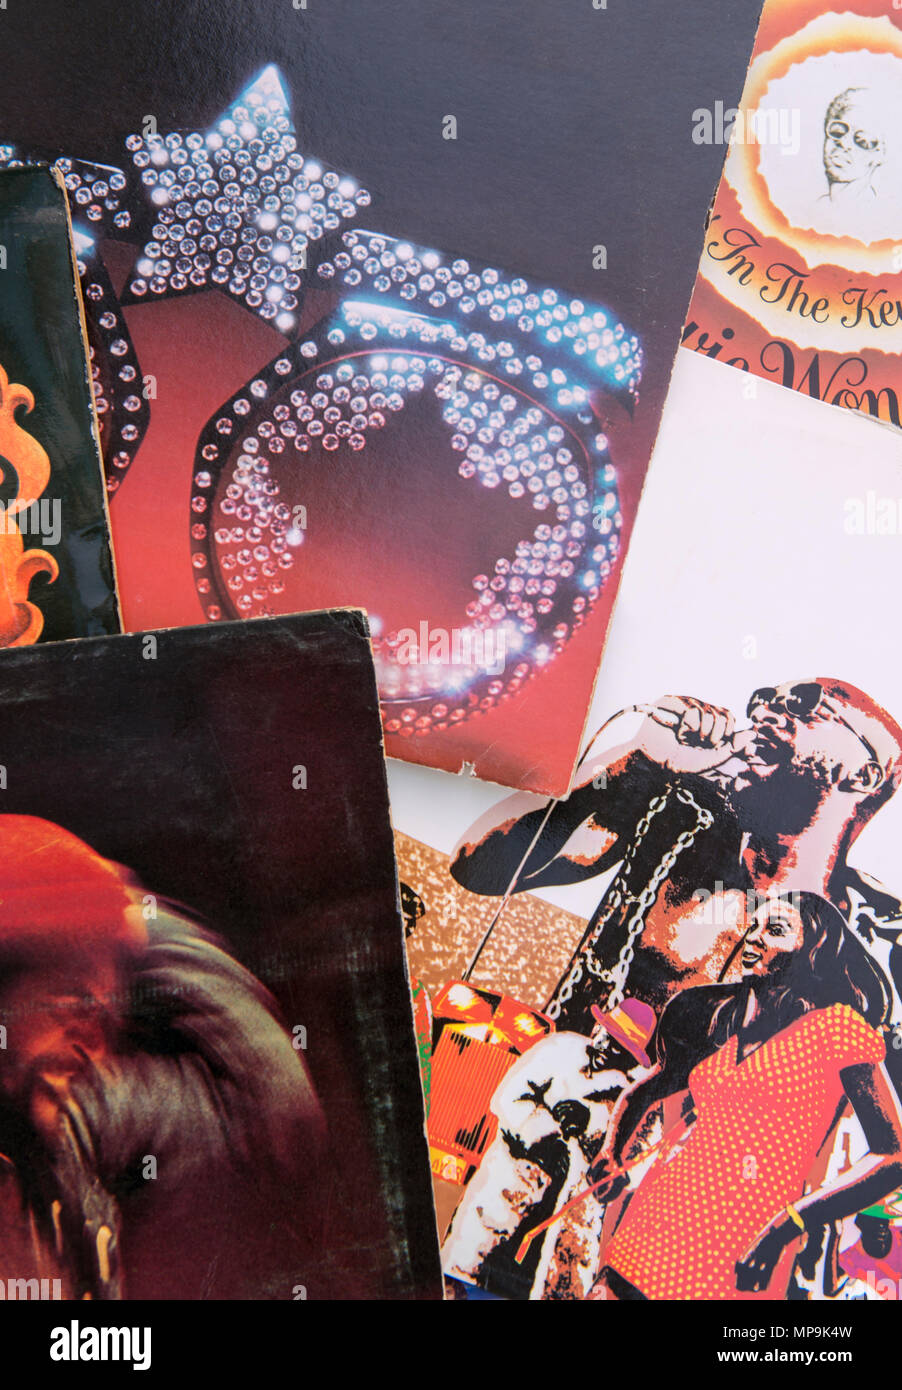 Covers of a selection of 1970s soul and funk albums - Stock Image